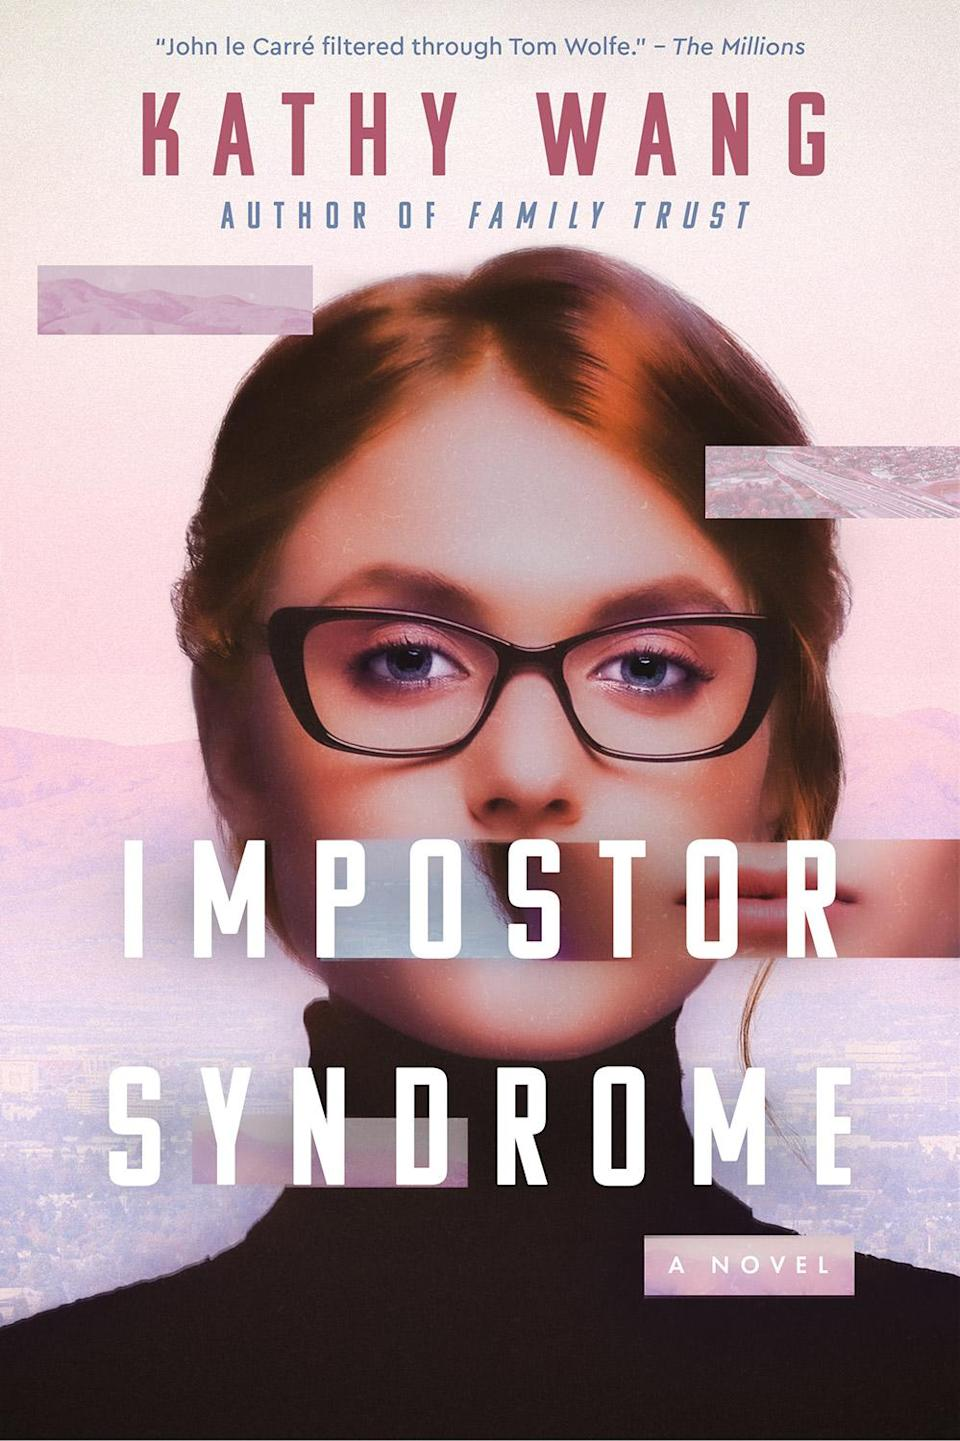 <p>A famous Silicon Valley tech company, a female COO under extra scrutiny, a Russian spy ring threatening to close in on the U.S. — Kathy Wang's sophomore novel has all the trappings of a book impossible to put down. It follows Julia, a plant sent over from Moscow who landed at Tangerine (a riff on Google), and Alice, a first-generation Chinese American who discovers a security blip that hints at Julia's two-sided work. (May 25)</p>